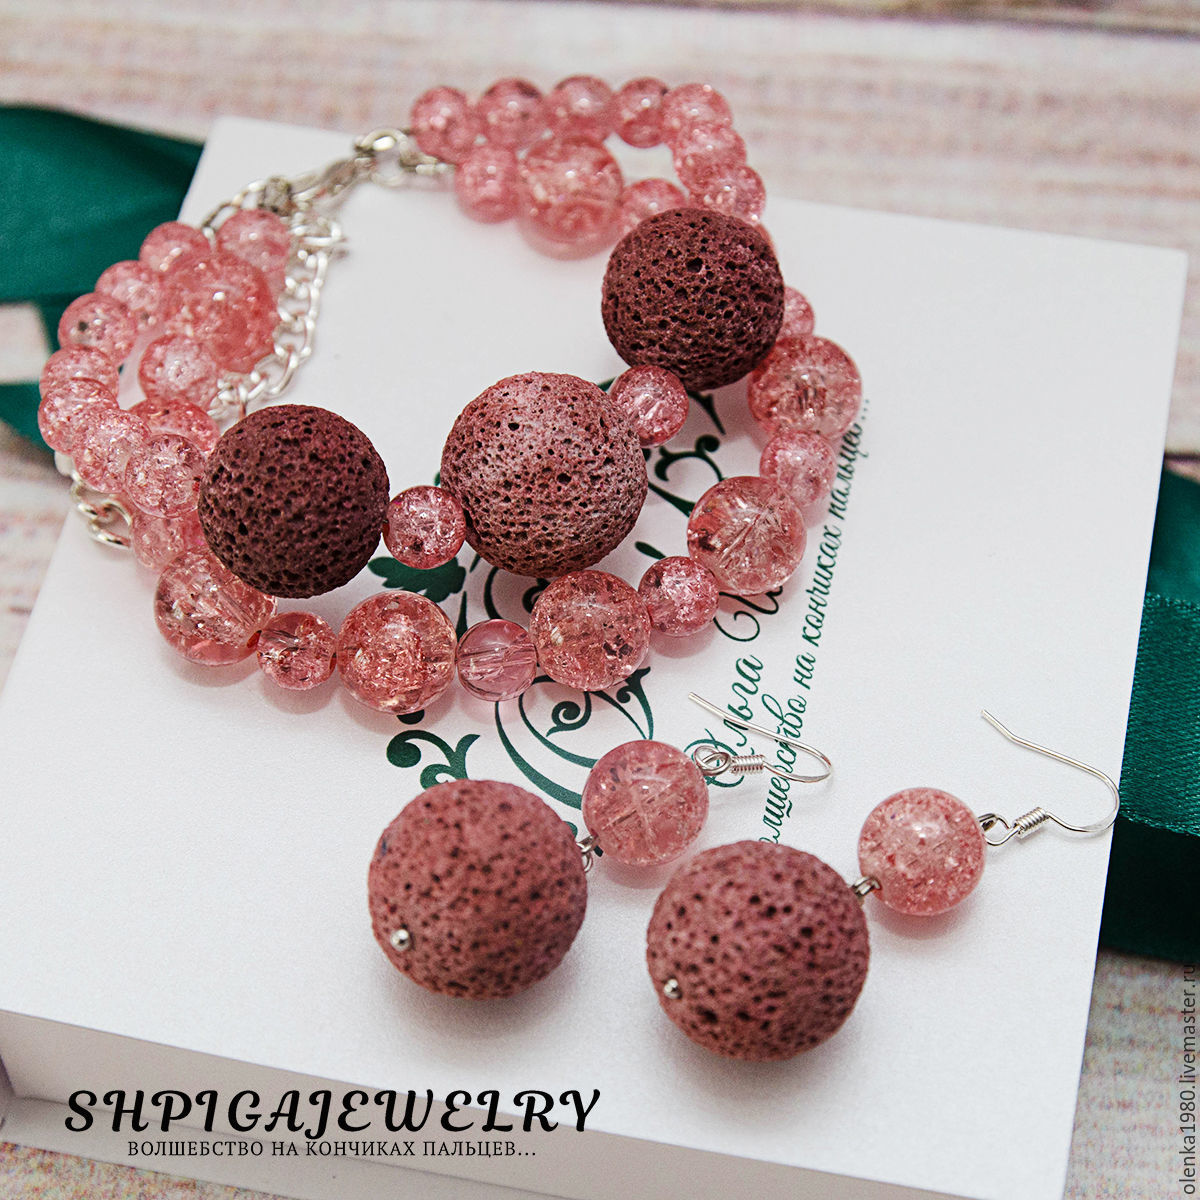 Jewelry set bracelet & earrings with snow quartz and lava Dusty Rose